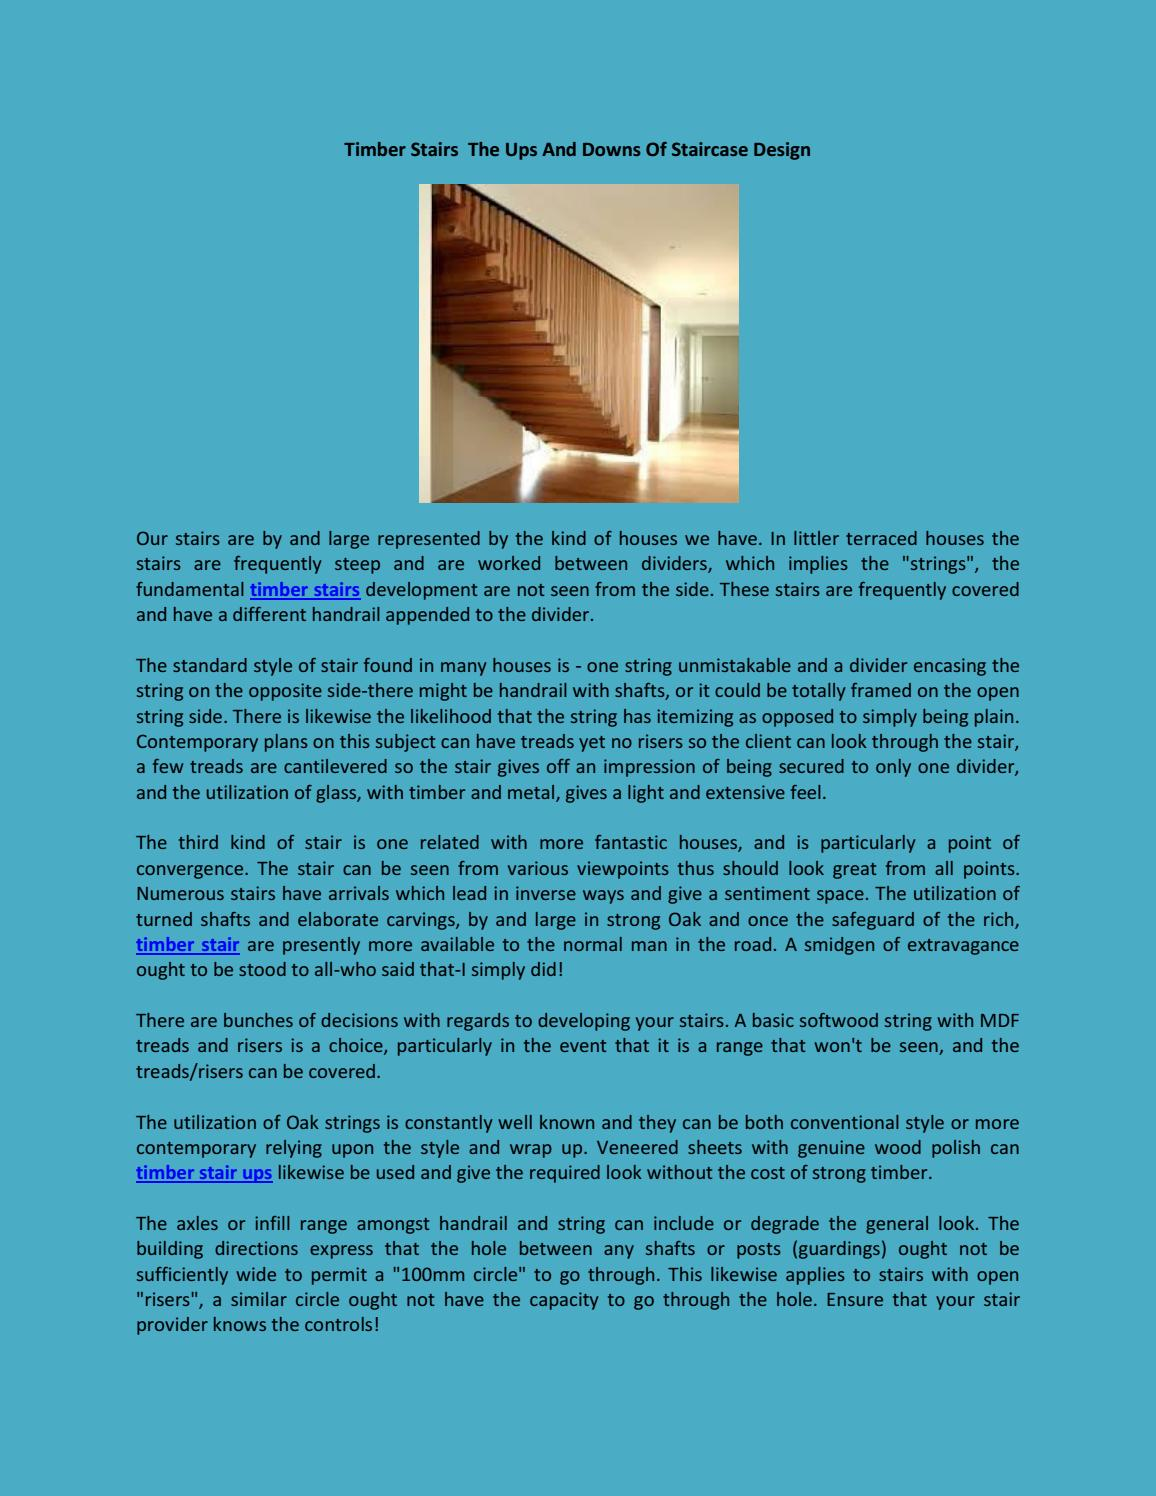 Timber Stairs The Ups And Downs Of Staircase Design by